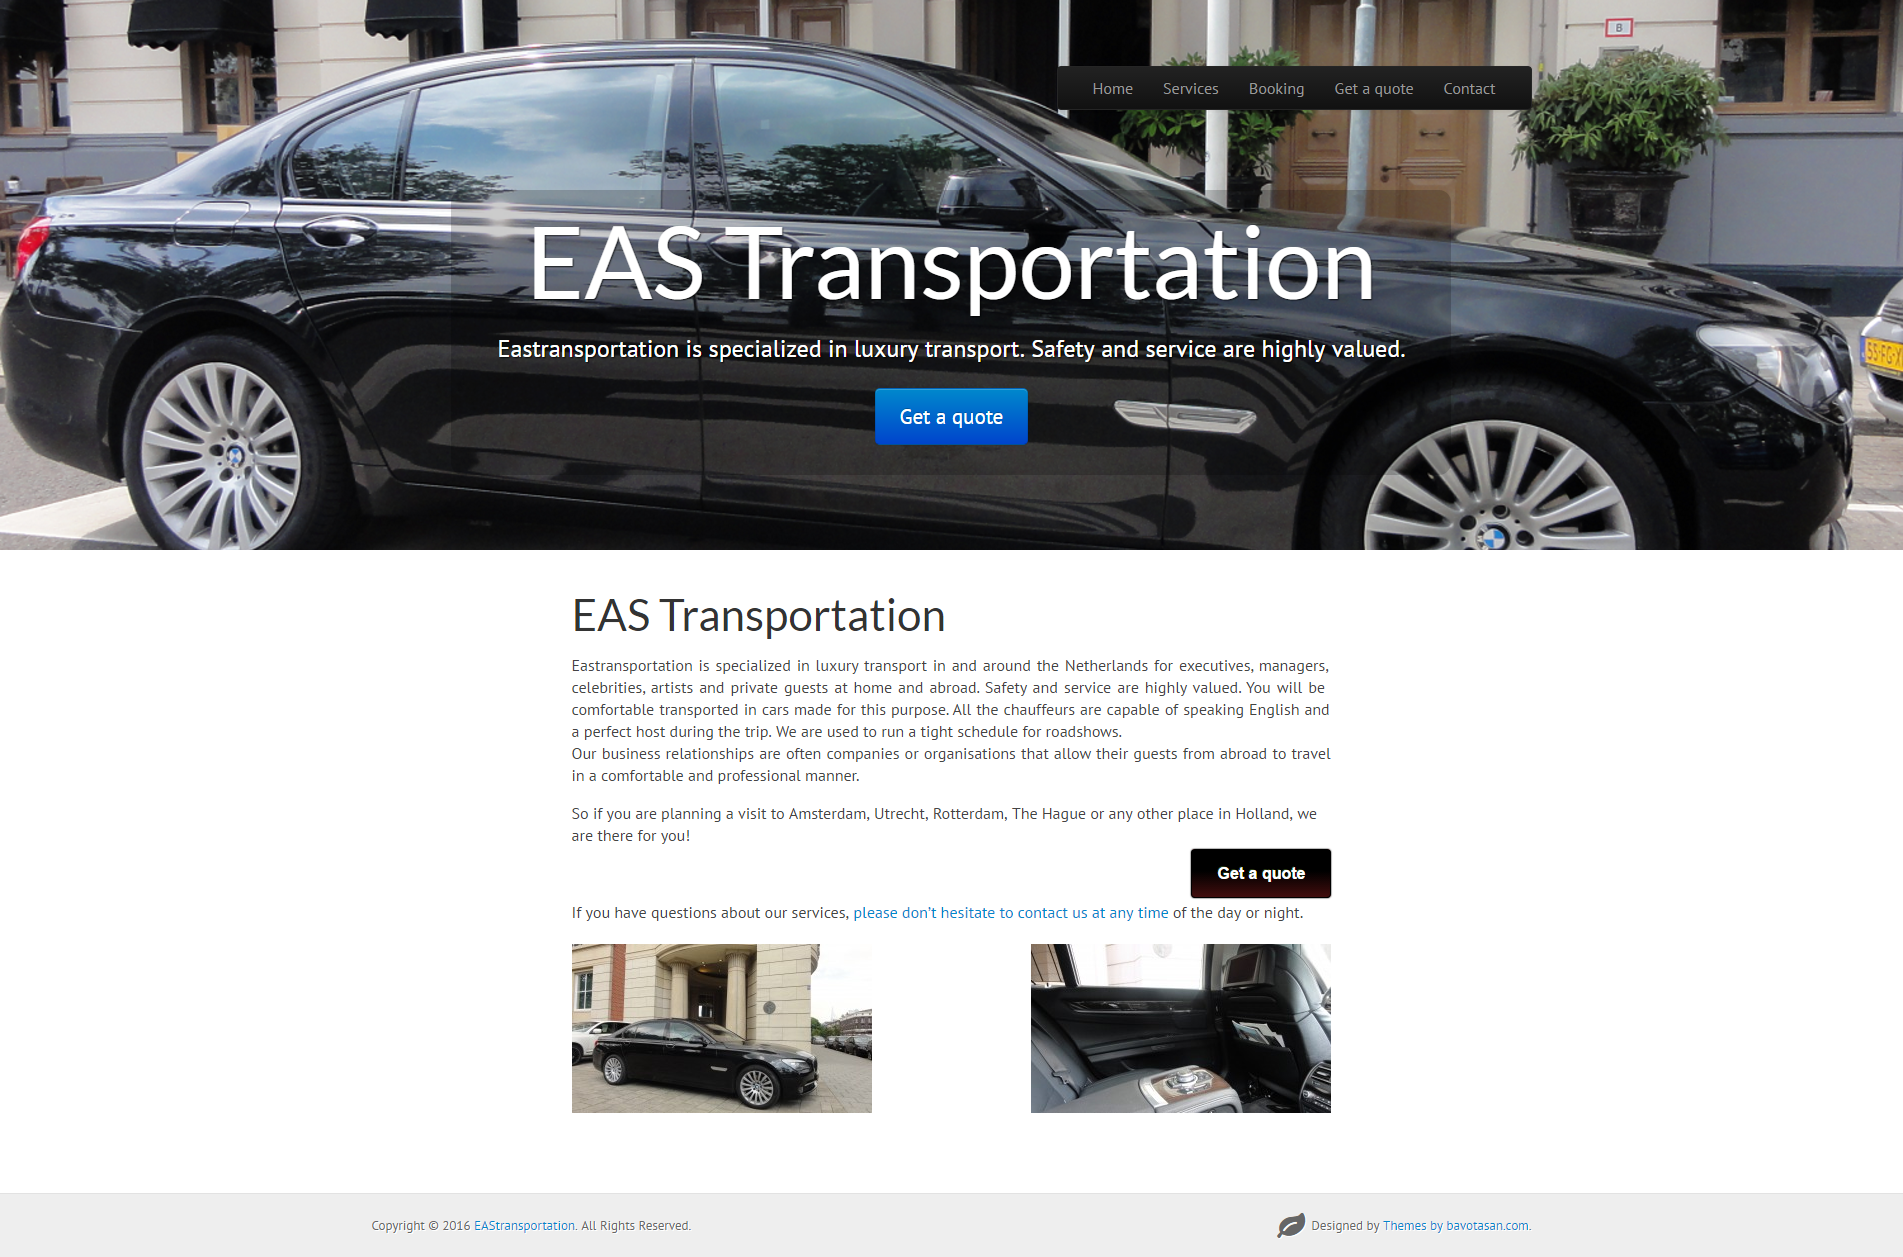 EAS Transportation